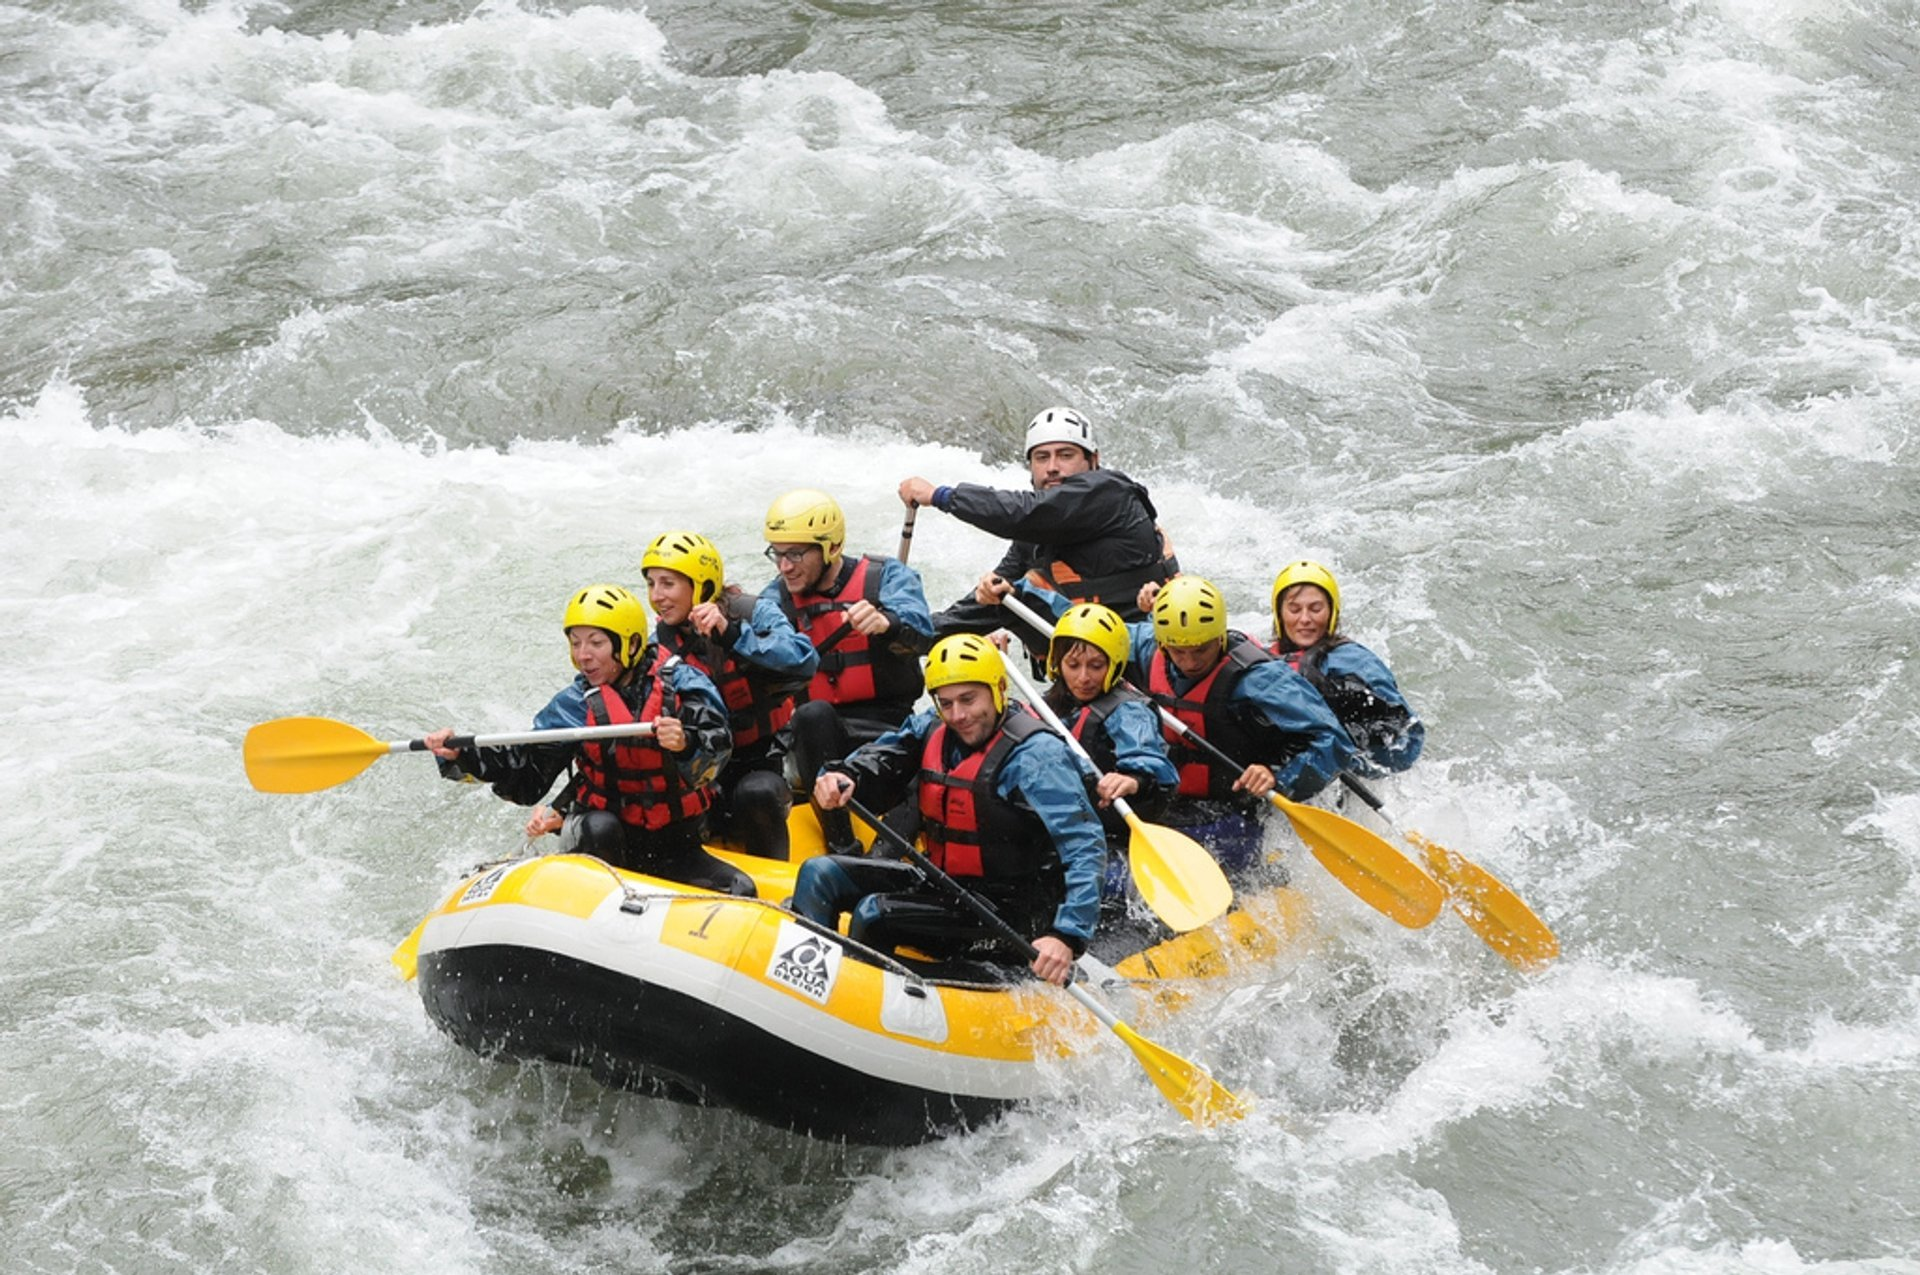 Best time to see White Water Rafting in Spain 2020